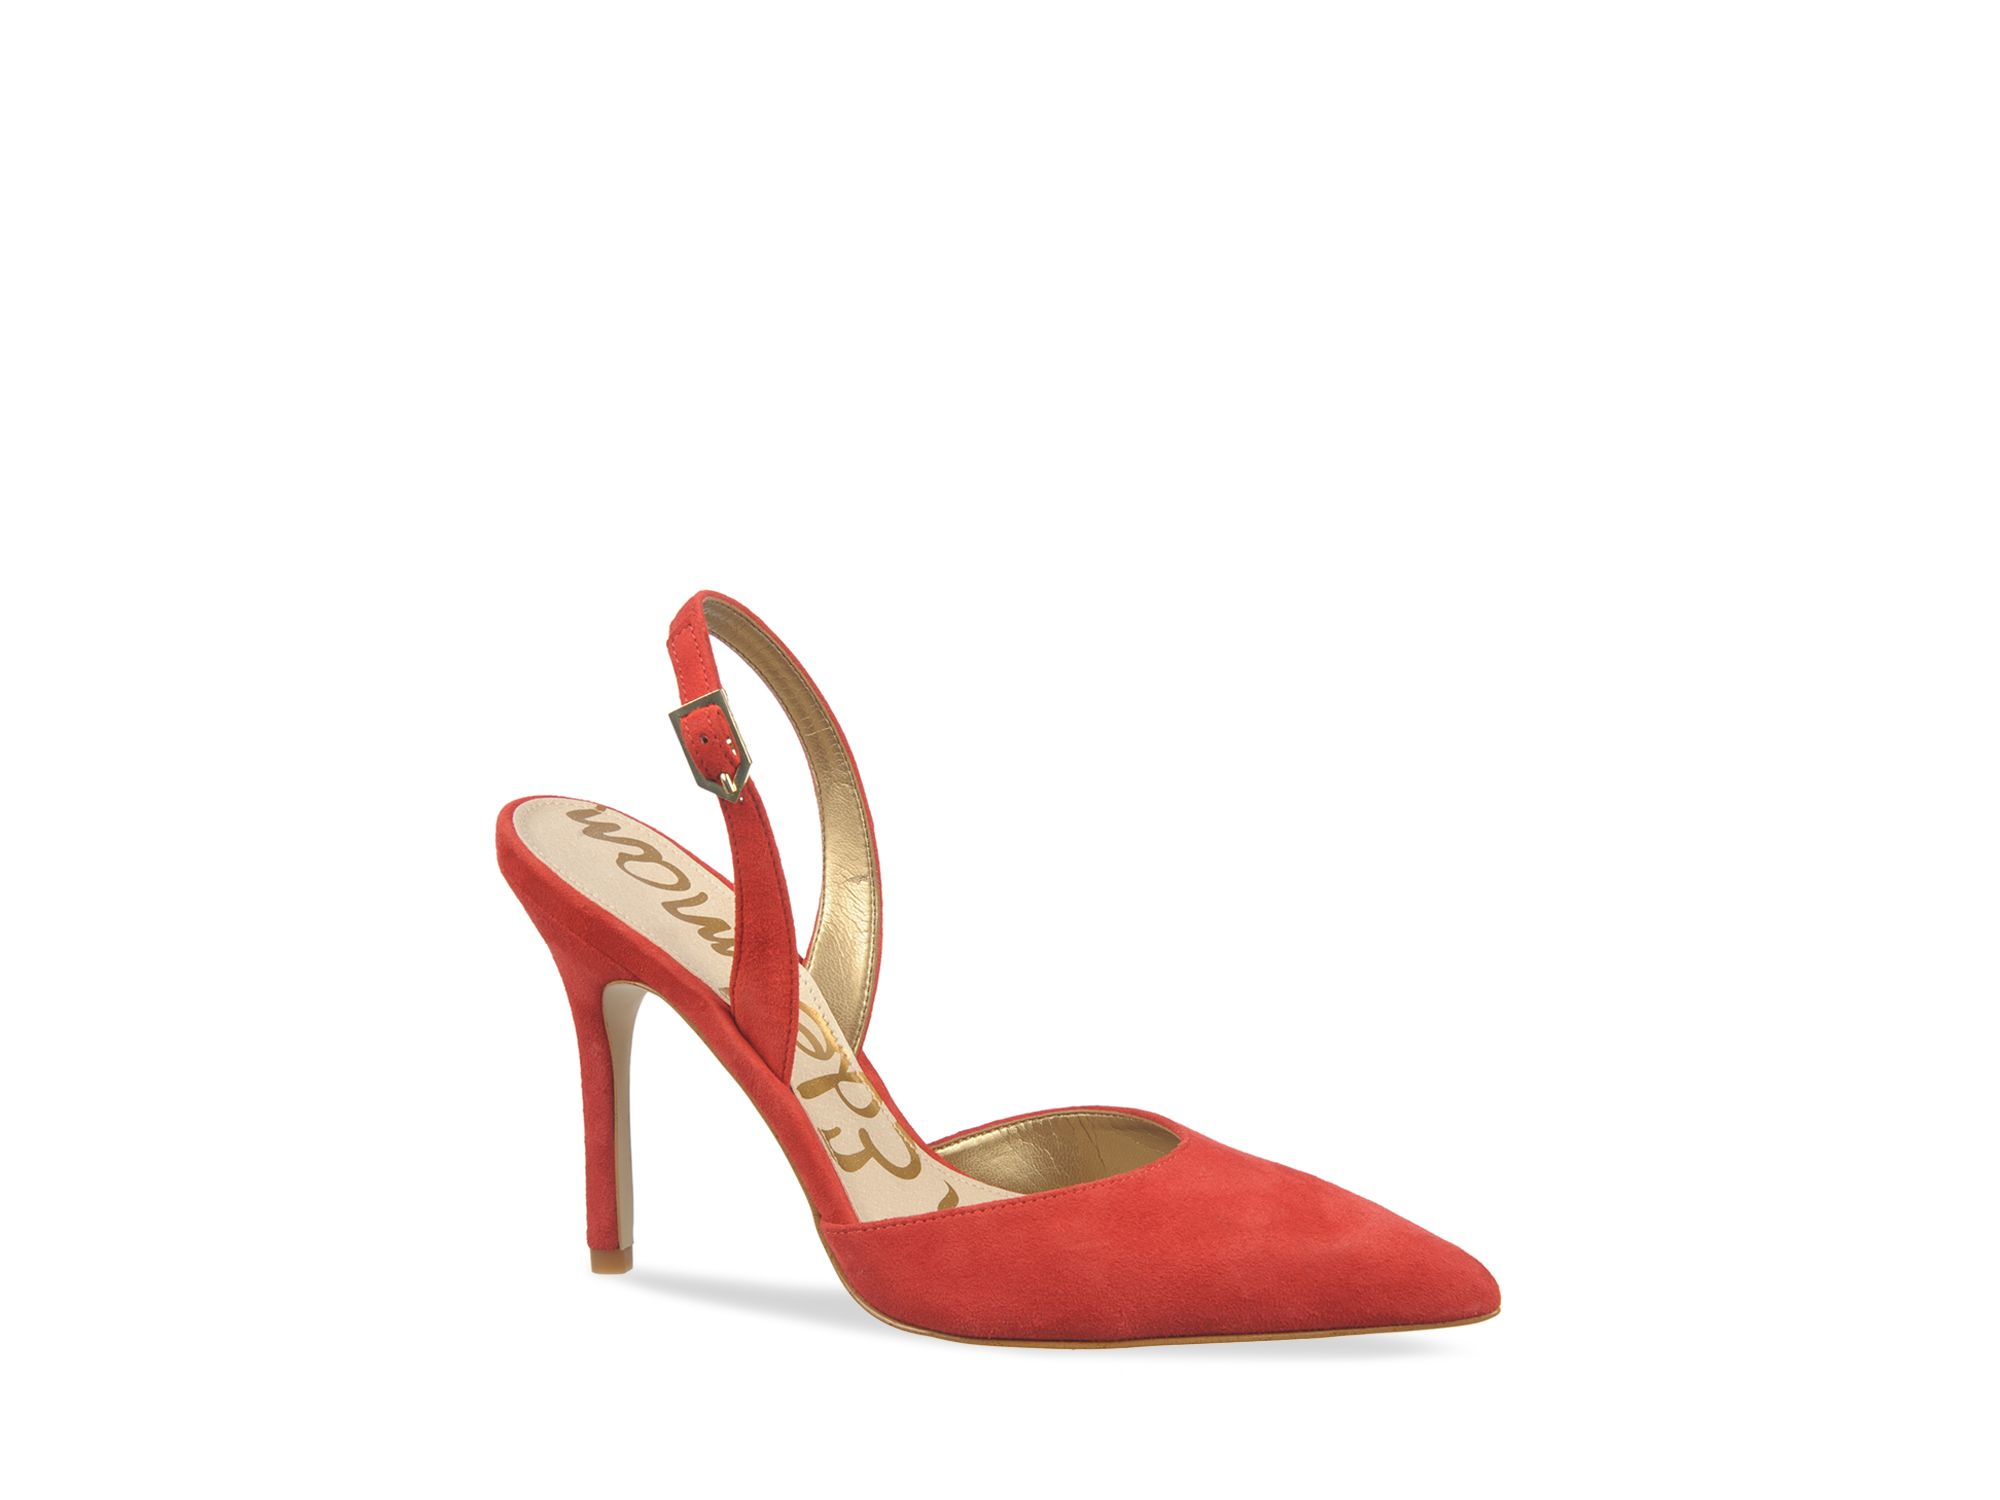 a922539fb0eac4 Lyst - Sam Edelman Slingback Pumps - Dora Pointed Toe in Red